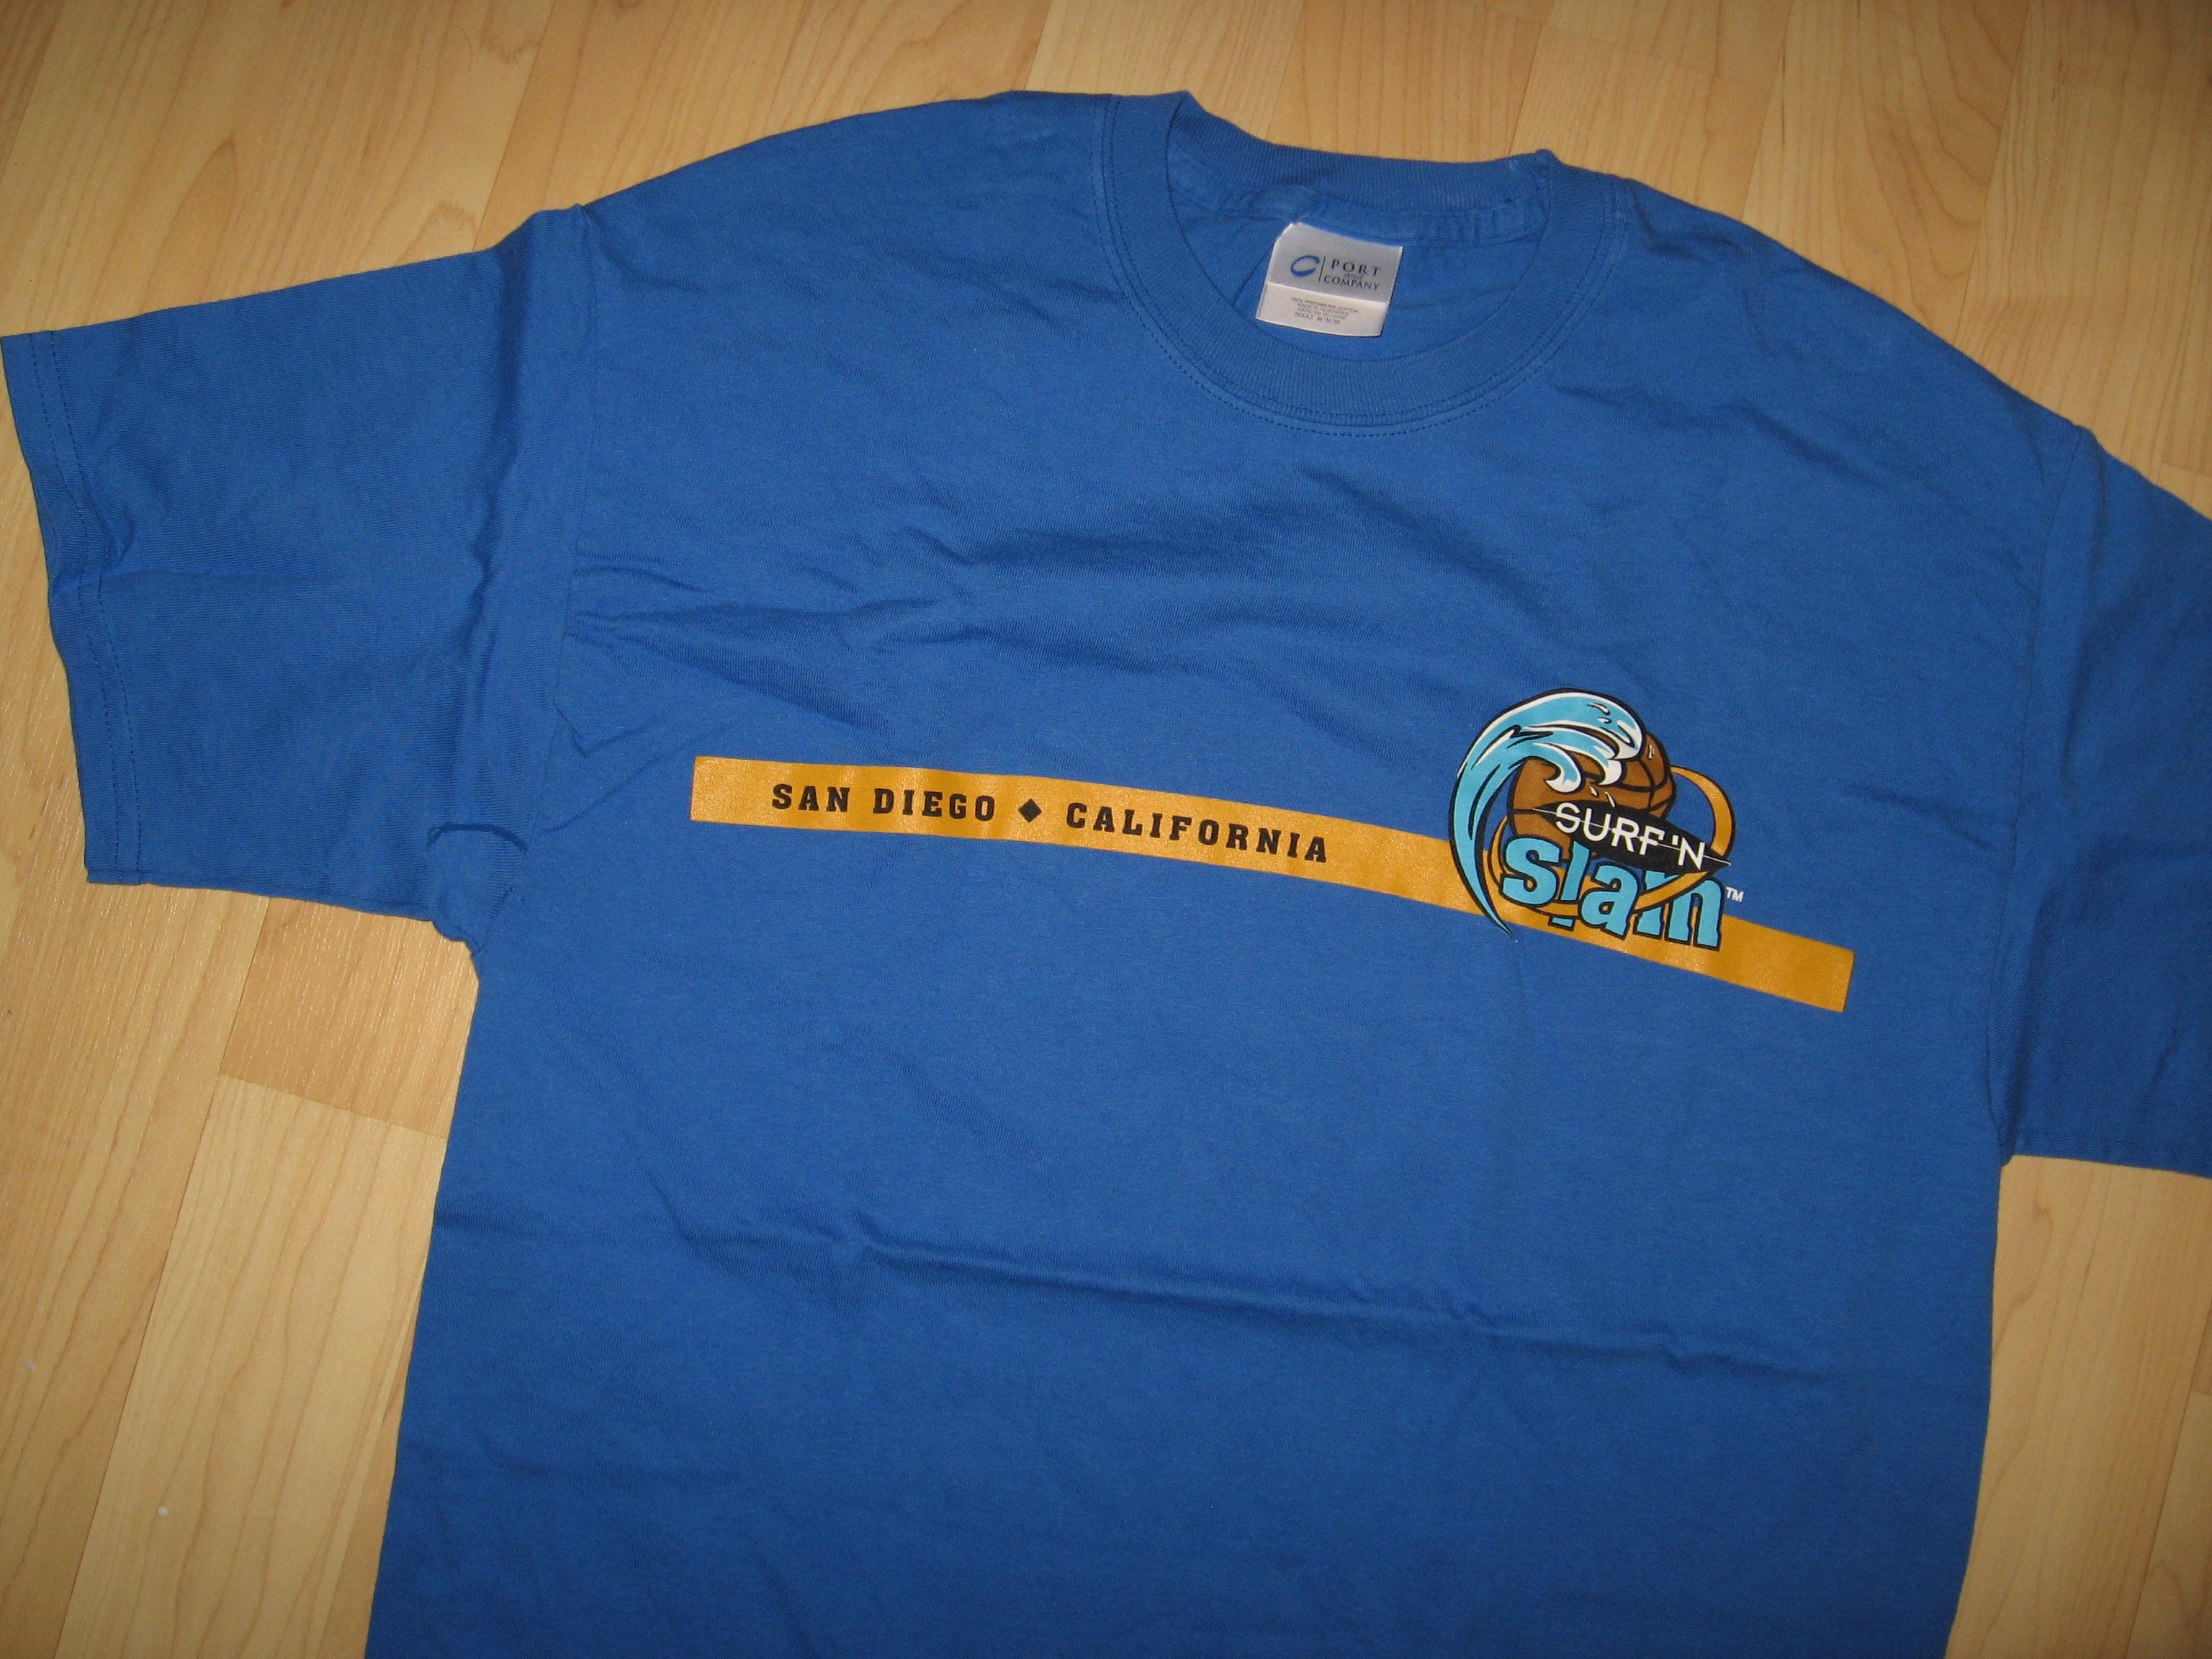 San Diego Surf 'N Slam Basketball Tee - Medium